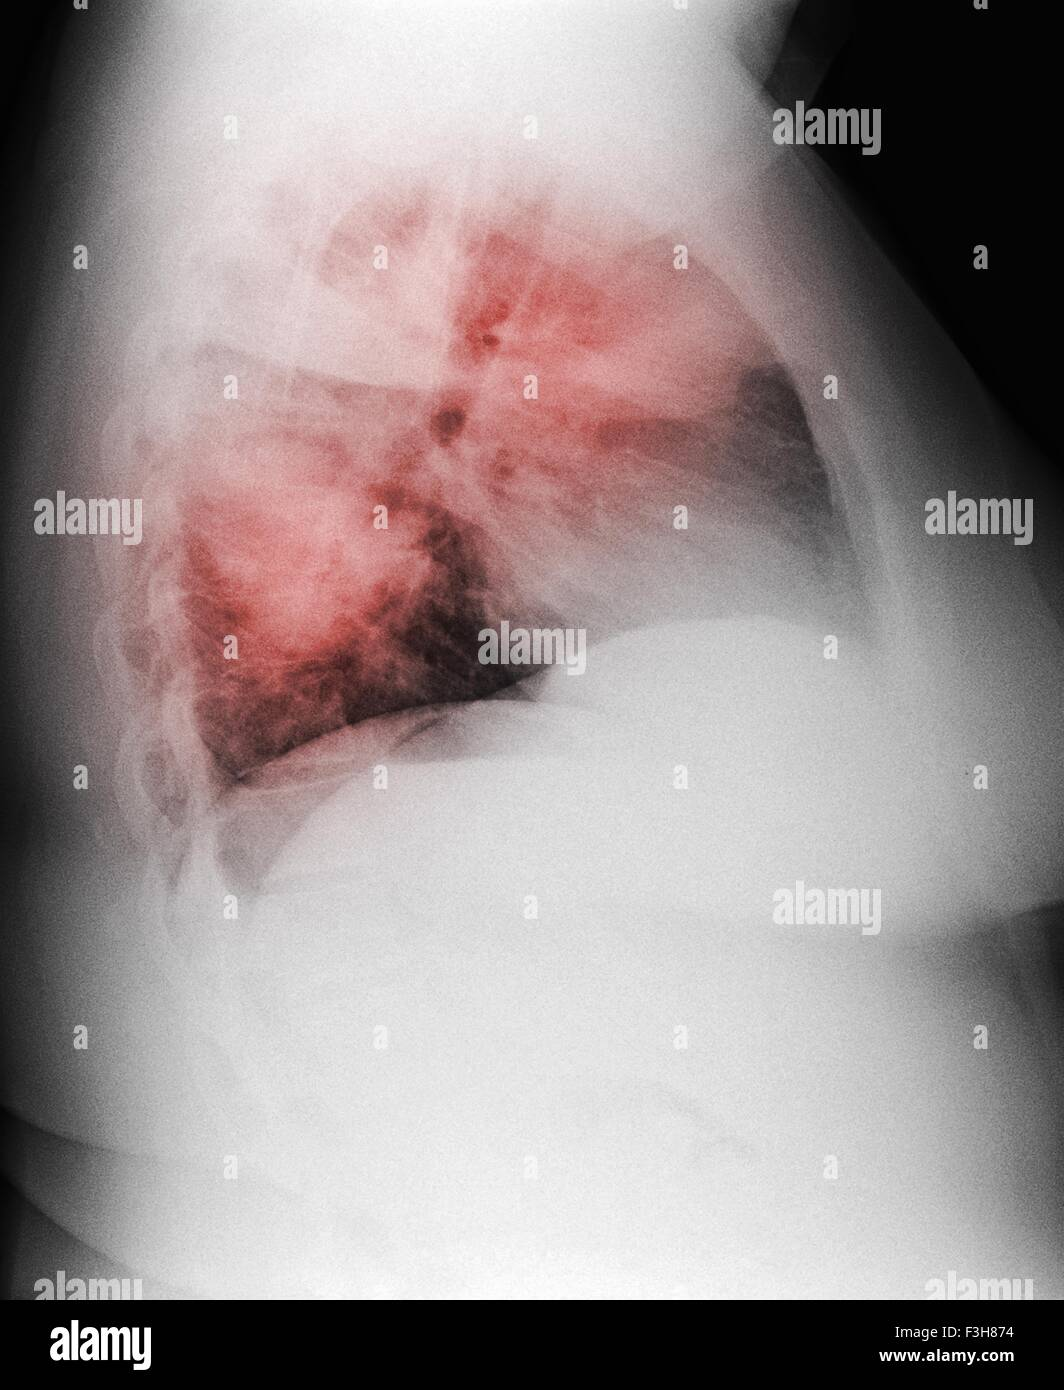 Chest x-ray of a 44 year old woman smoker, showing diffuse interstitial infiltrates suggestive of an atypical pneumonia - Stock Image